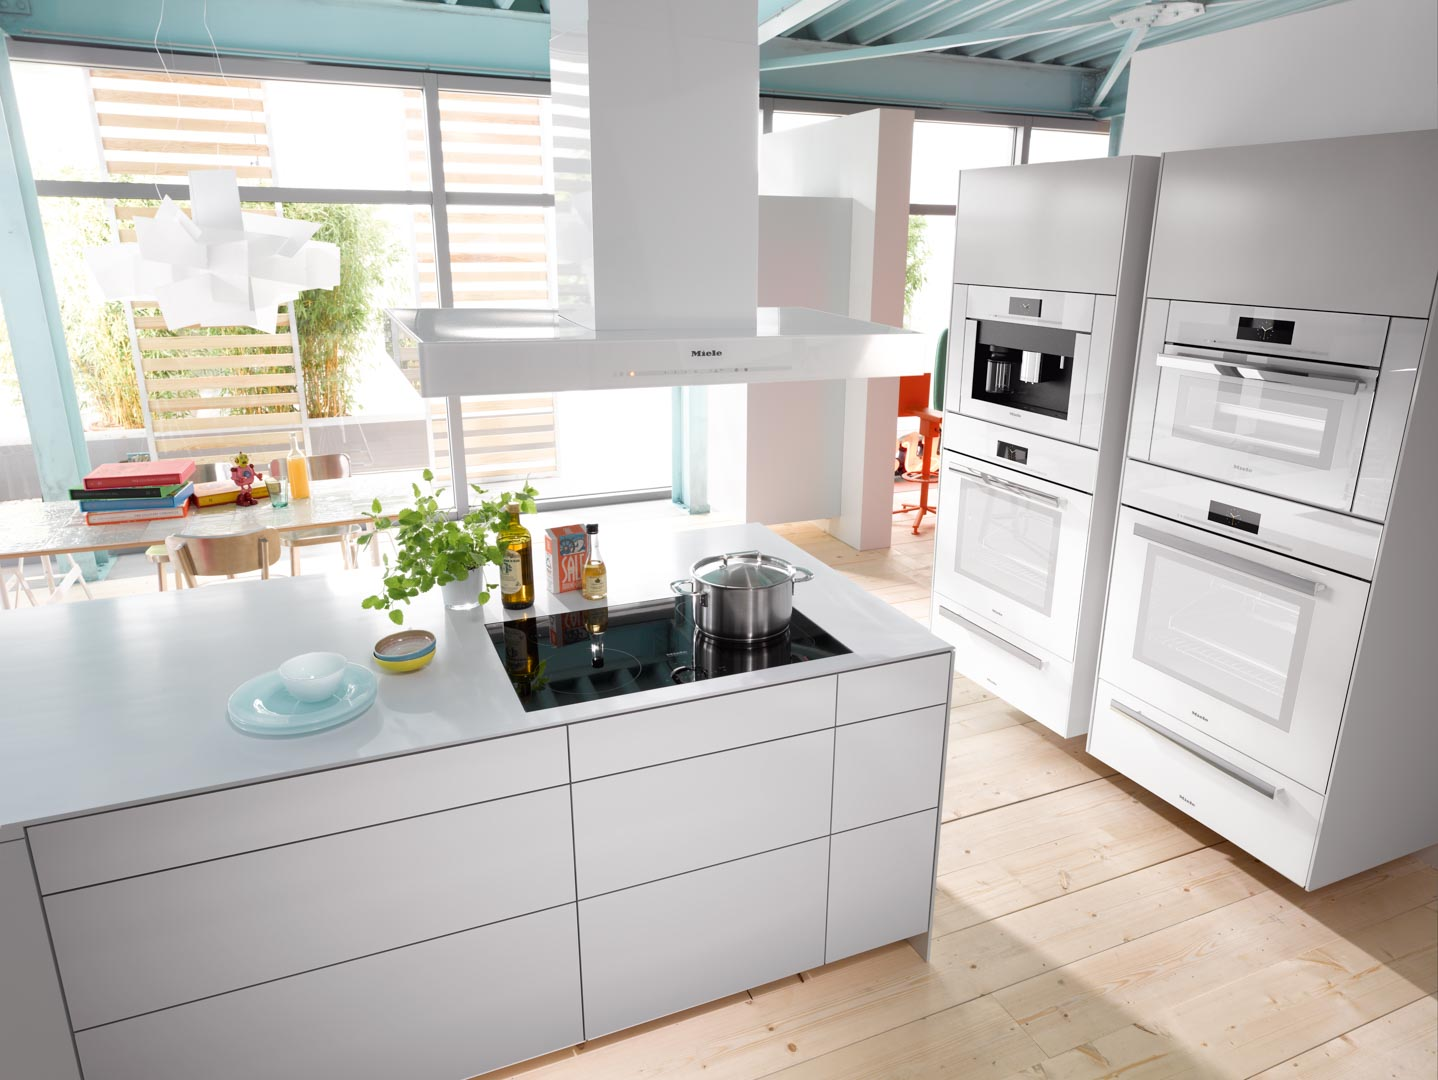 Miele Brilliant White Built-In Ovens